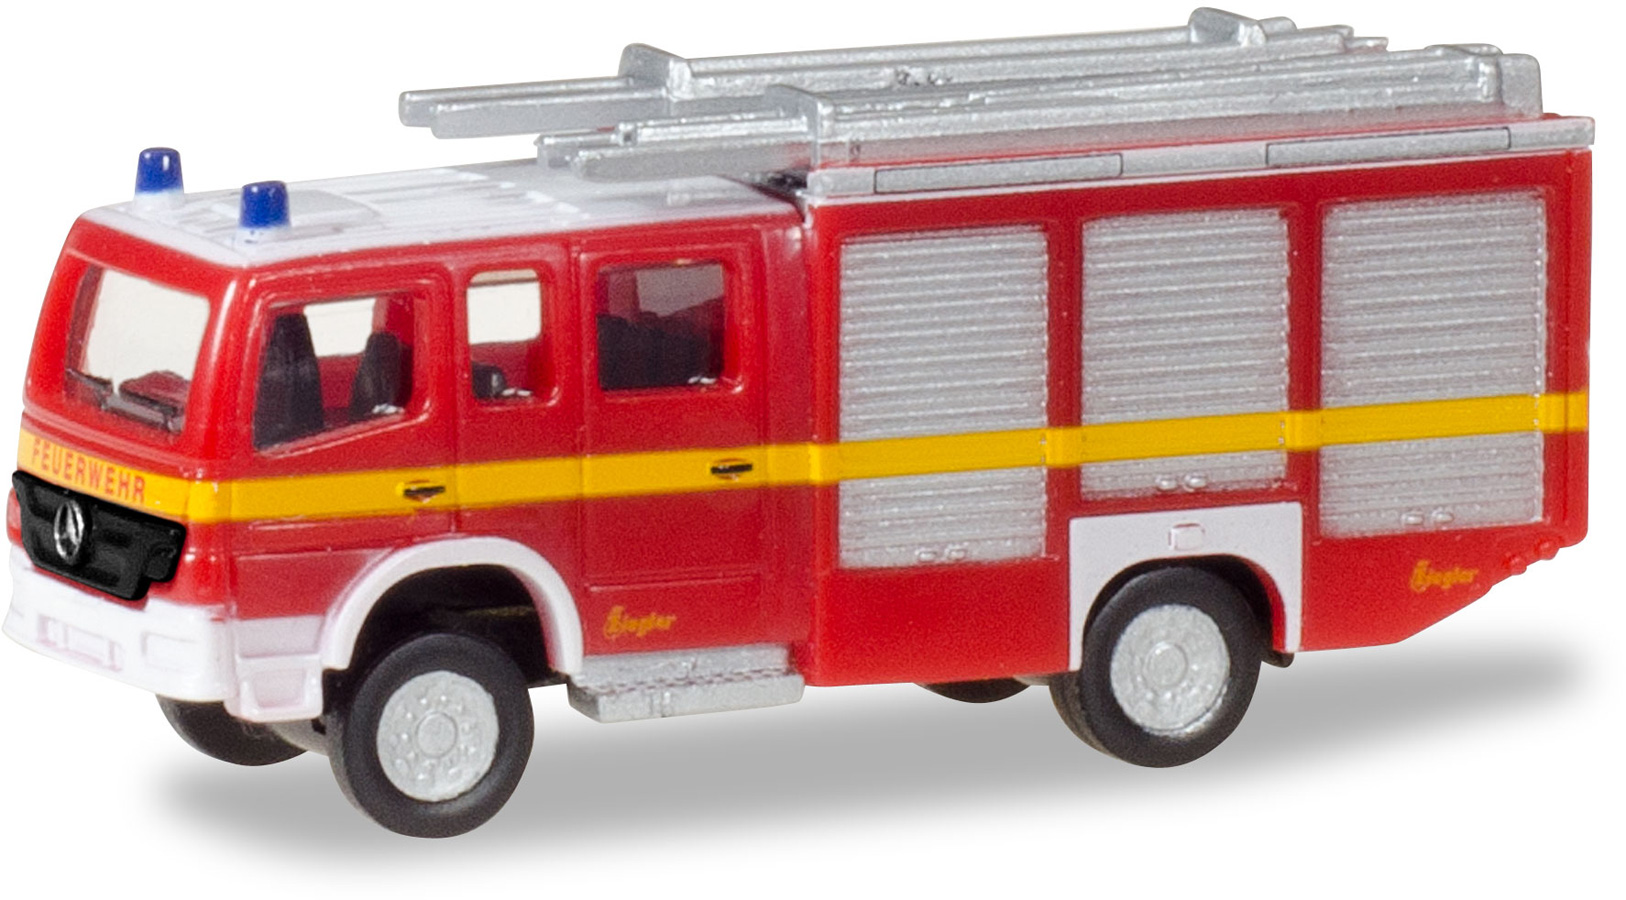 N Scale - Herpa - 066747 - Fire Engine - Fire and Rescue